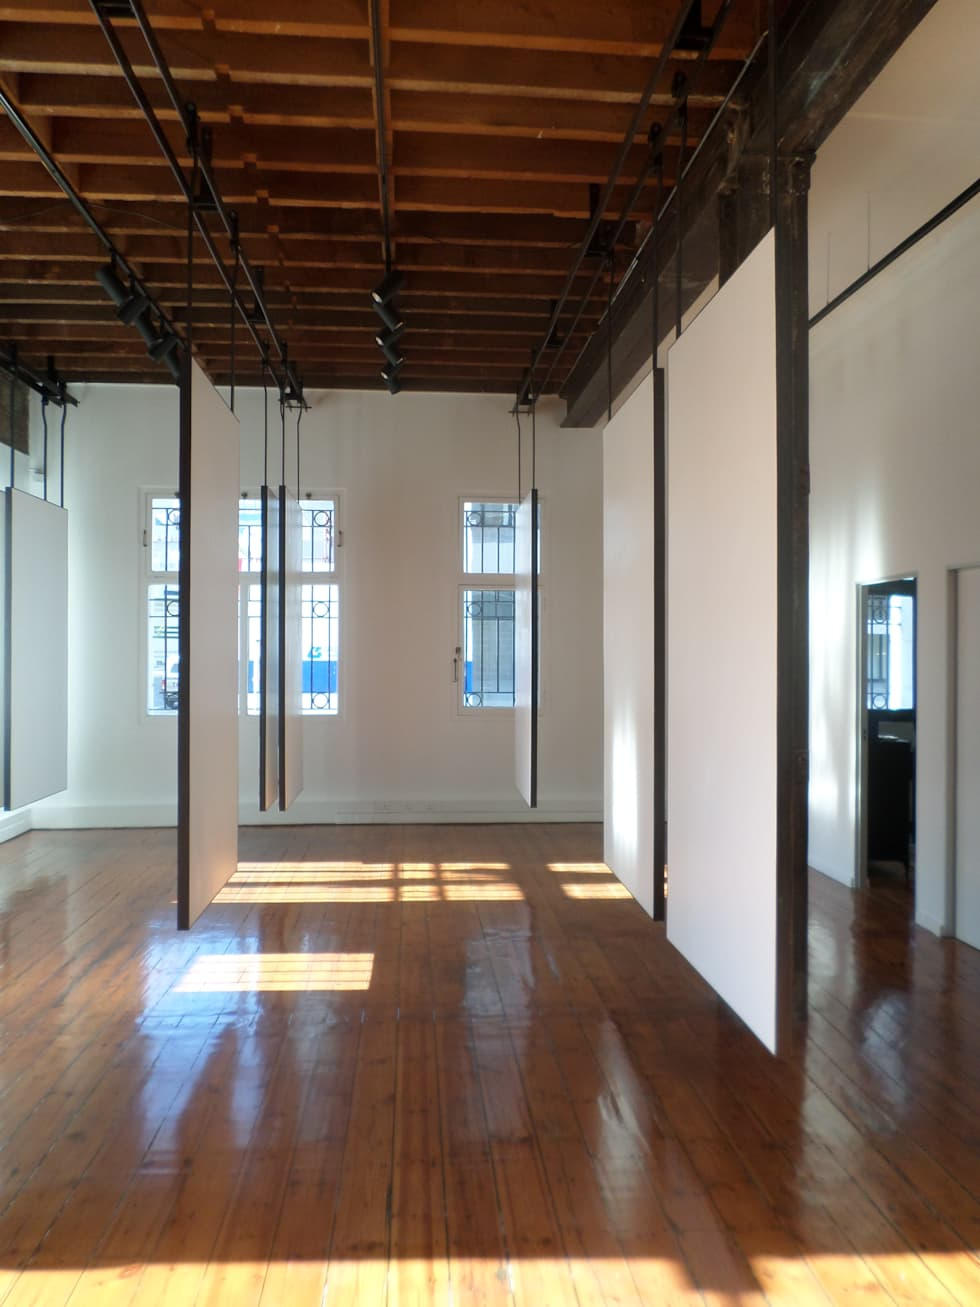 Gallery 153:  Commercial Spaces by Claire Cartner Interior Design